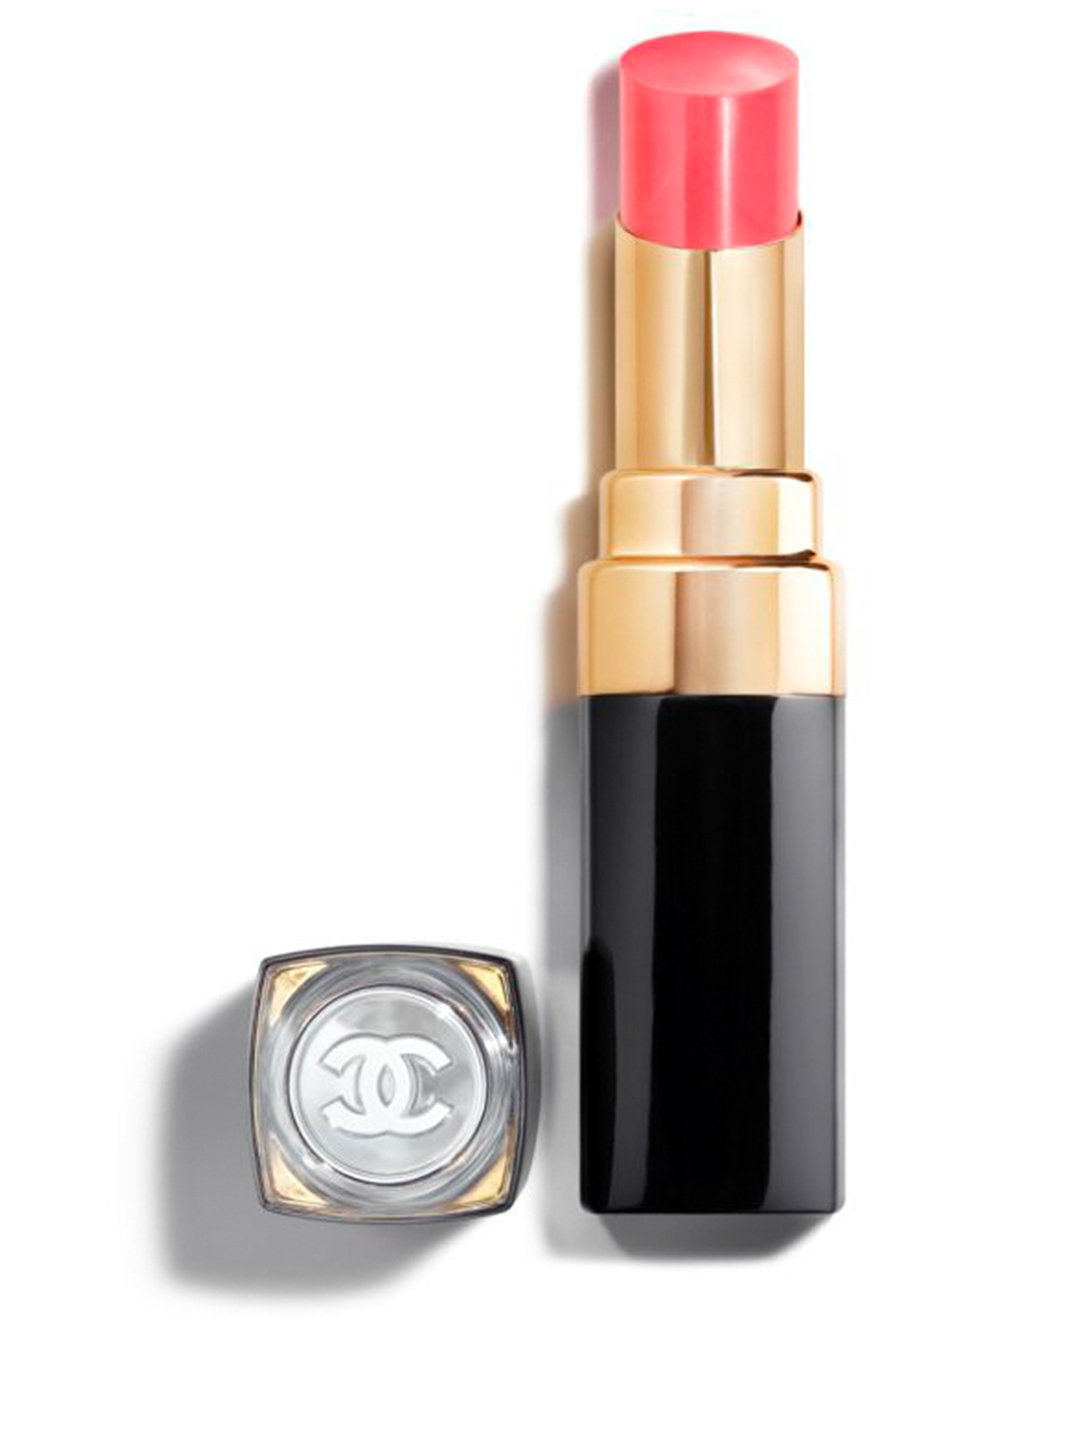 CHANEL Colour, Shine, Intensity In A Flash CHANEL Pink